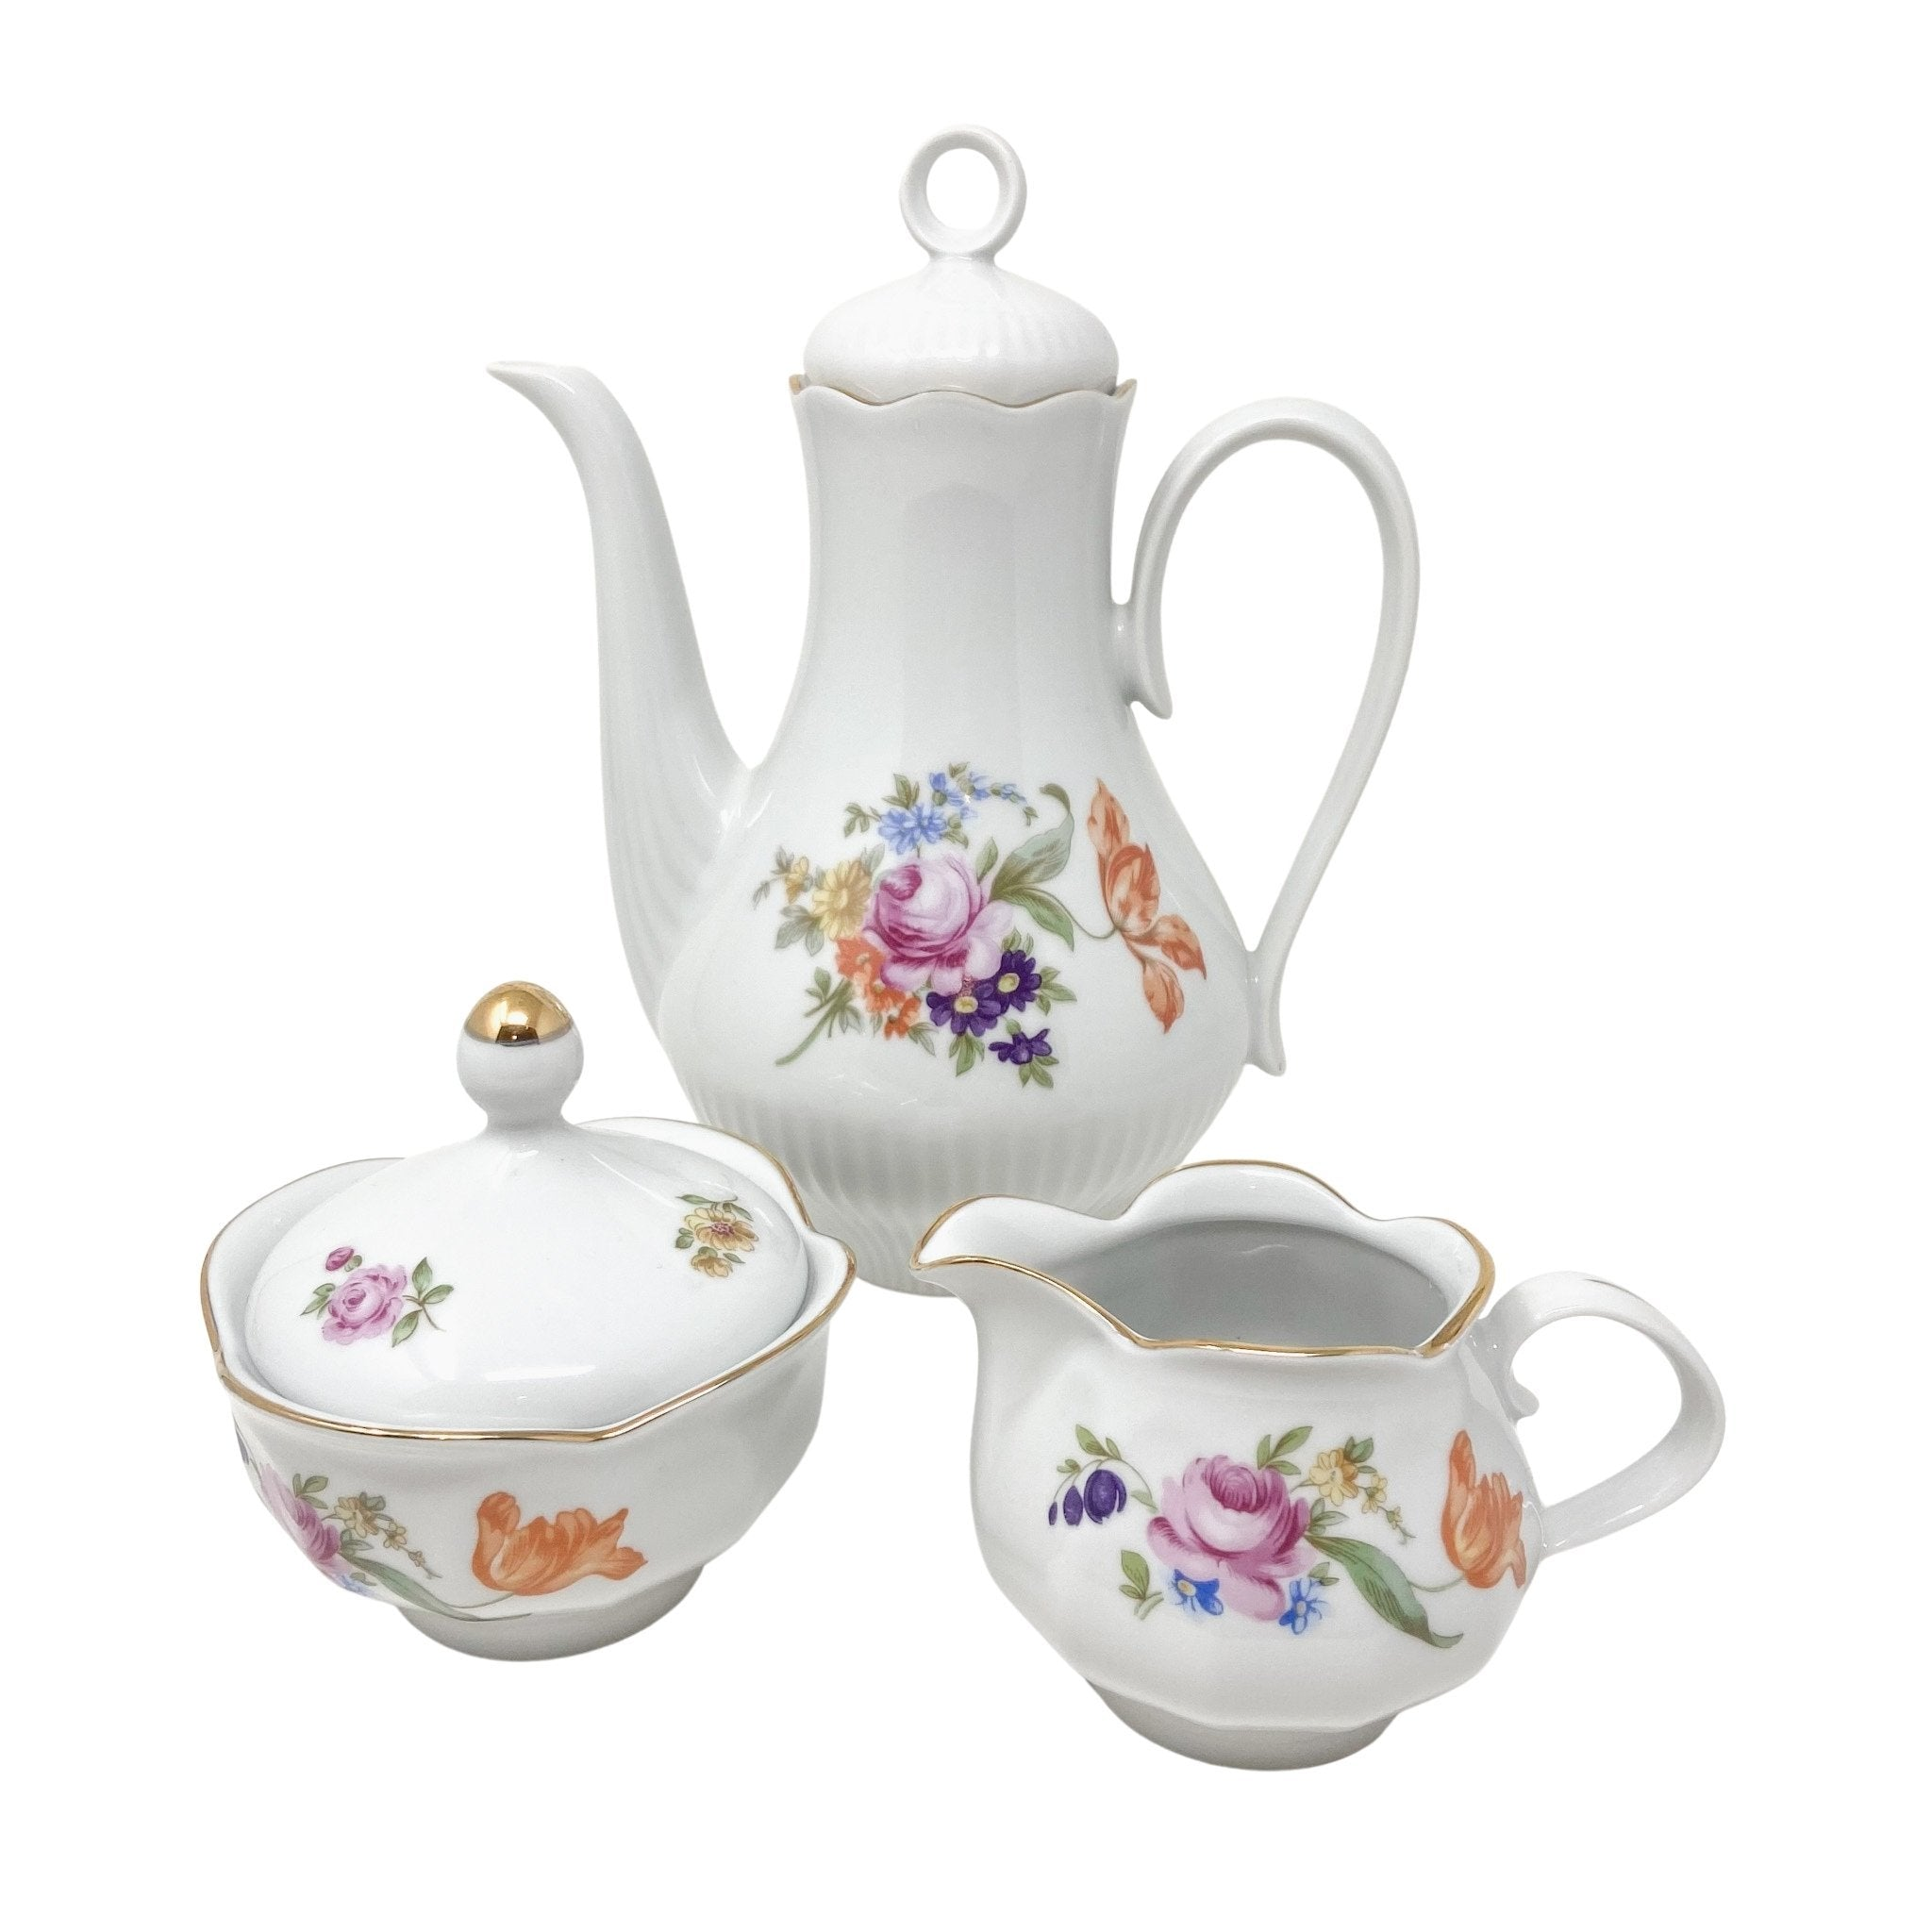 Jimenau Graf von Henneberg | Coffee Pot, Creamer, & Sugar Bowl | JLMEANU - The Brooklyn Teacup